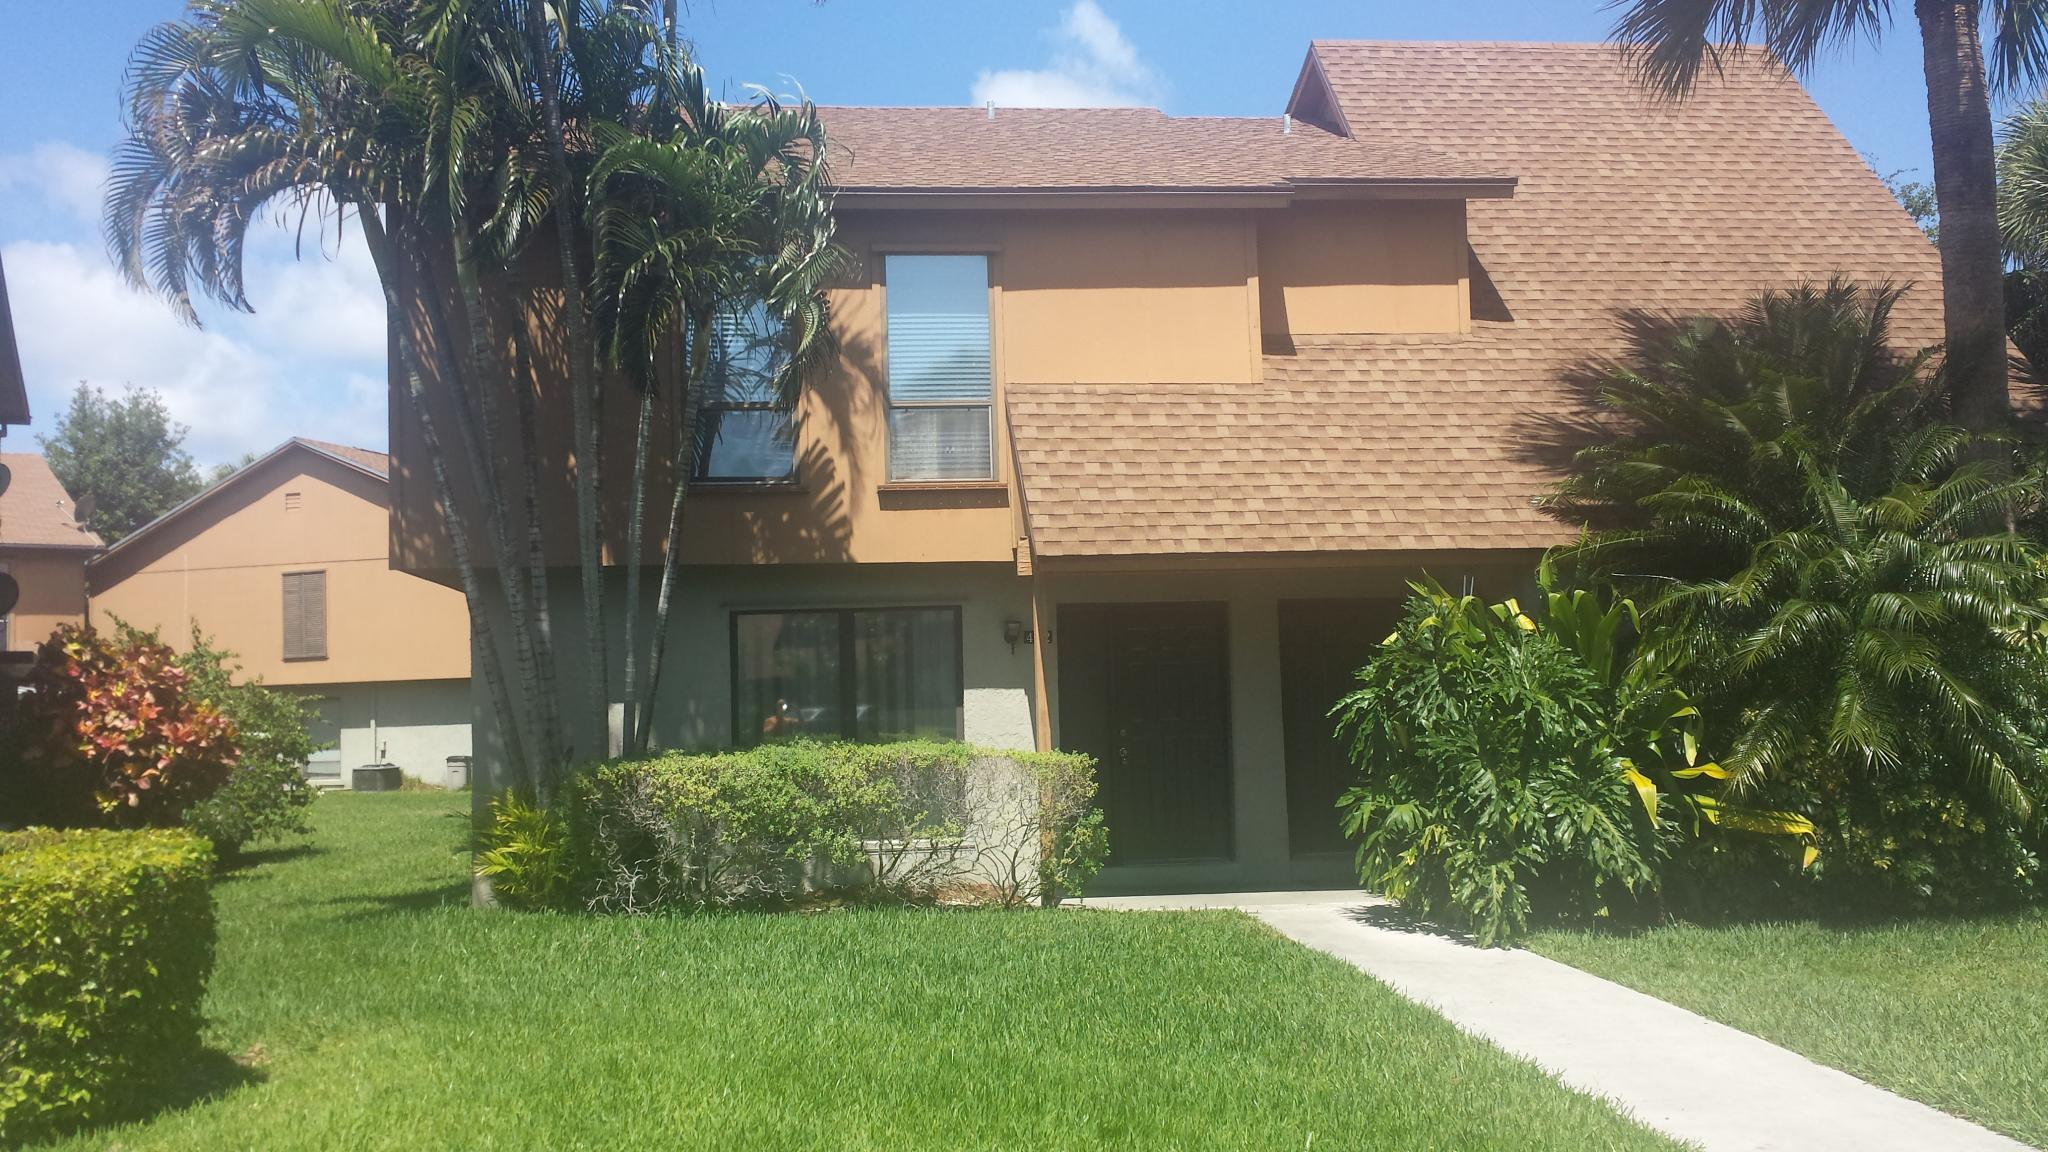 909 Sandtree Dr For Rent - Palm Beach Gardens, FL | Trulia